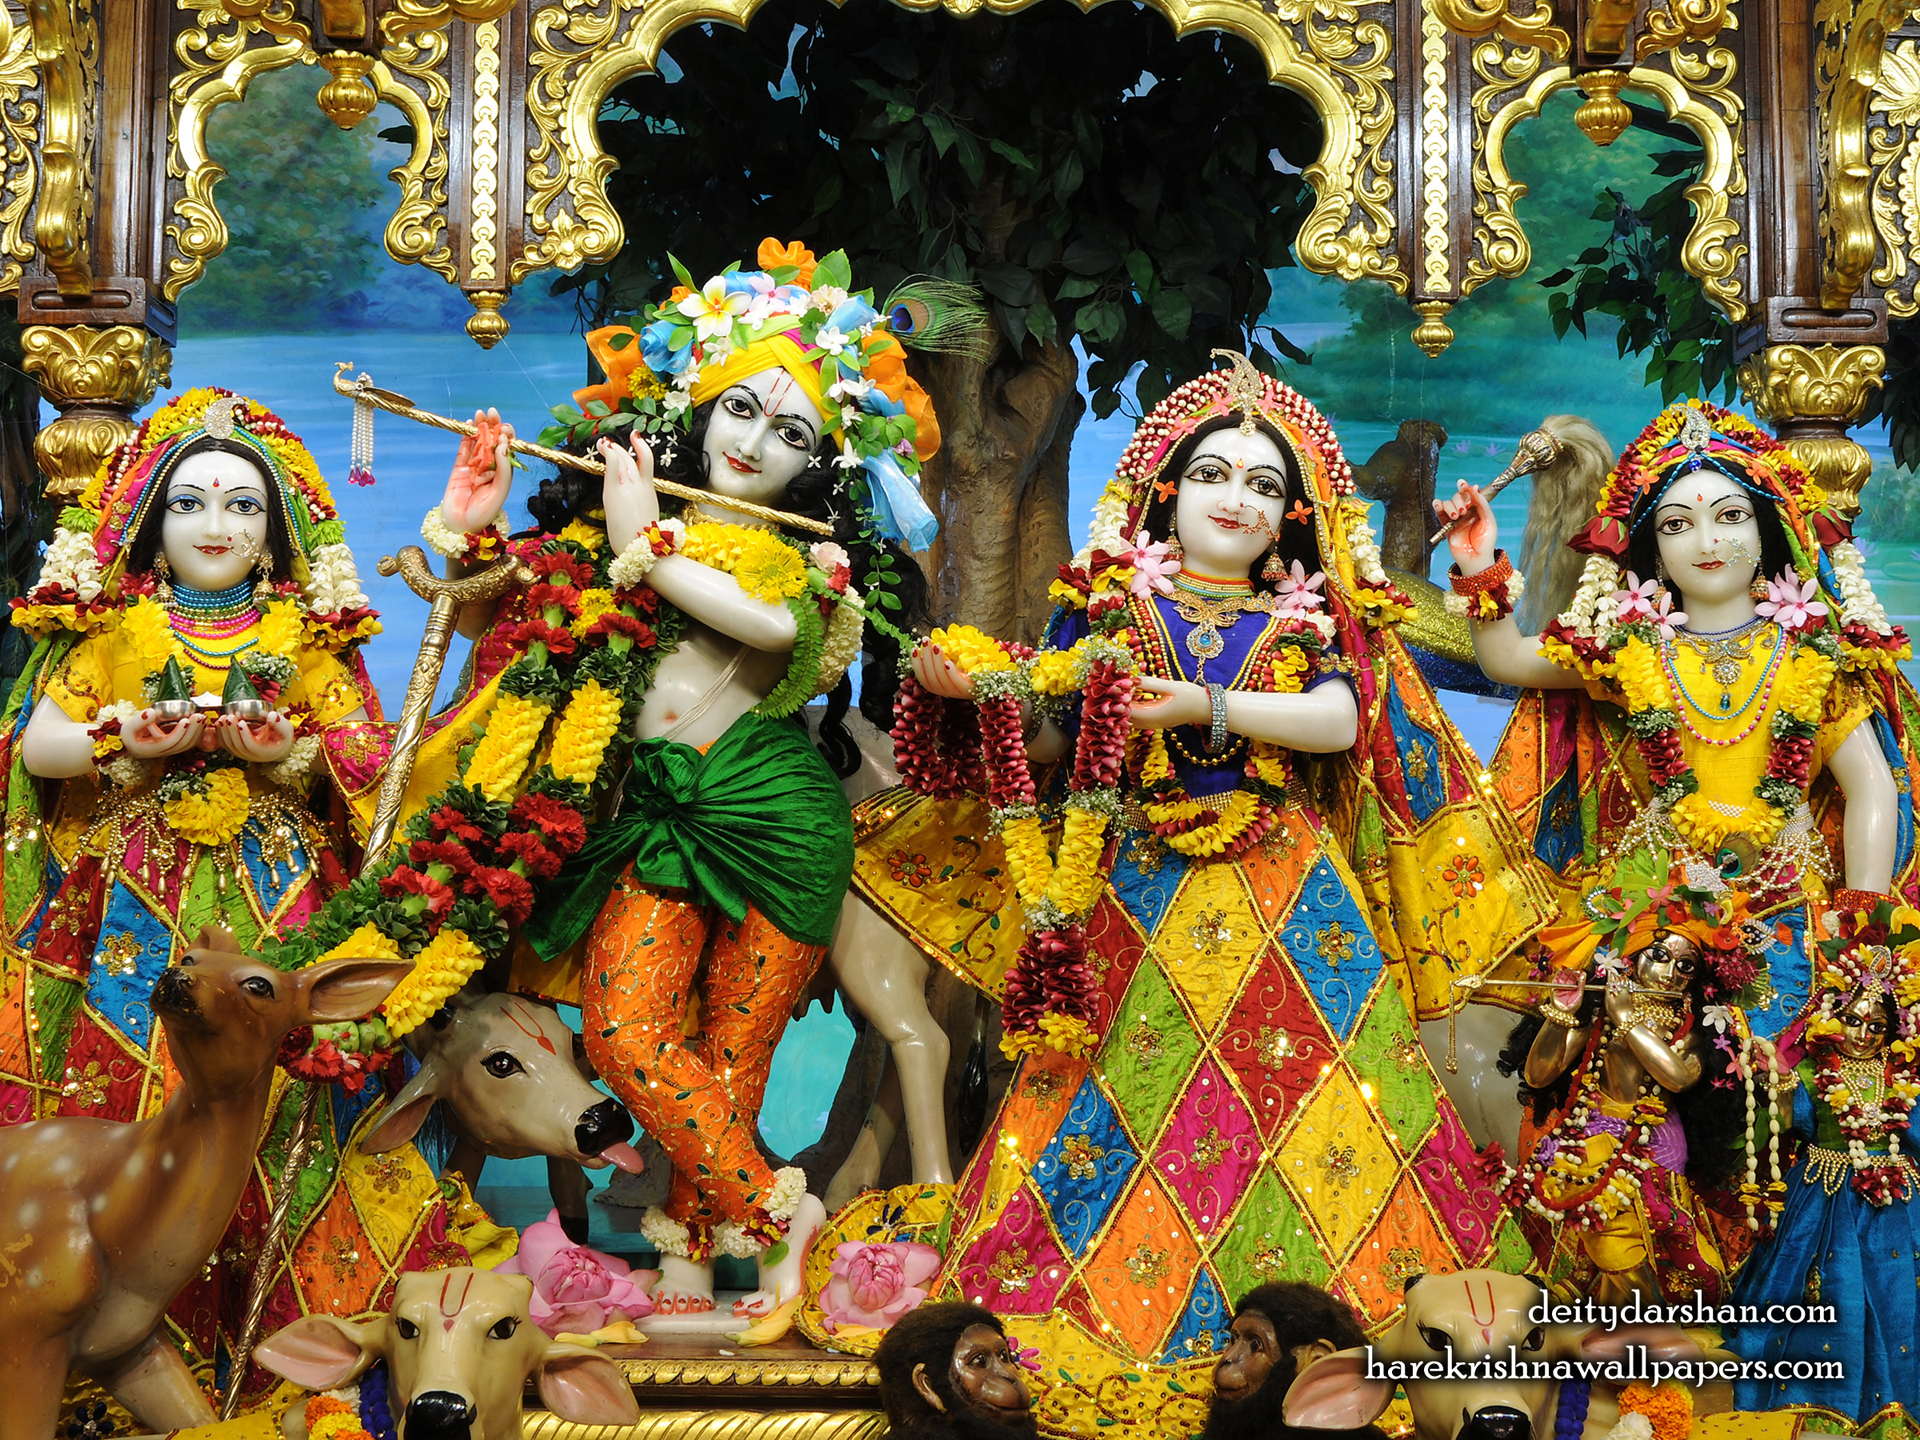 Sri Sri Radha Gopinath Lalita Vishakha Wallpaper (068) Size 1920x1440 Download